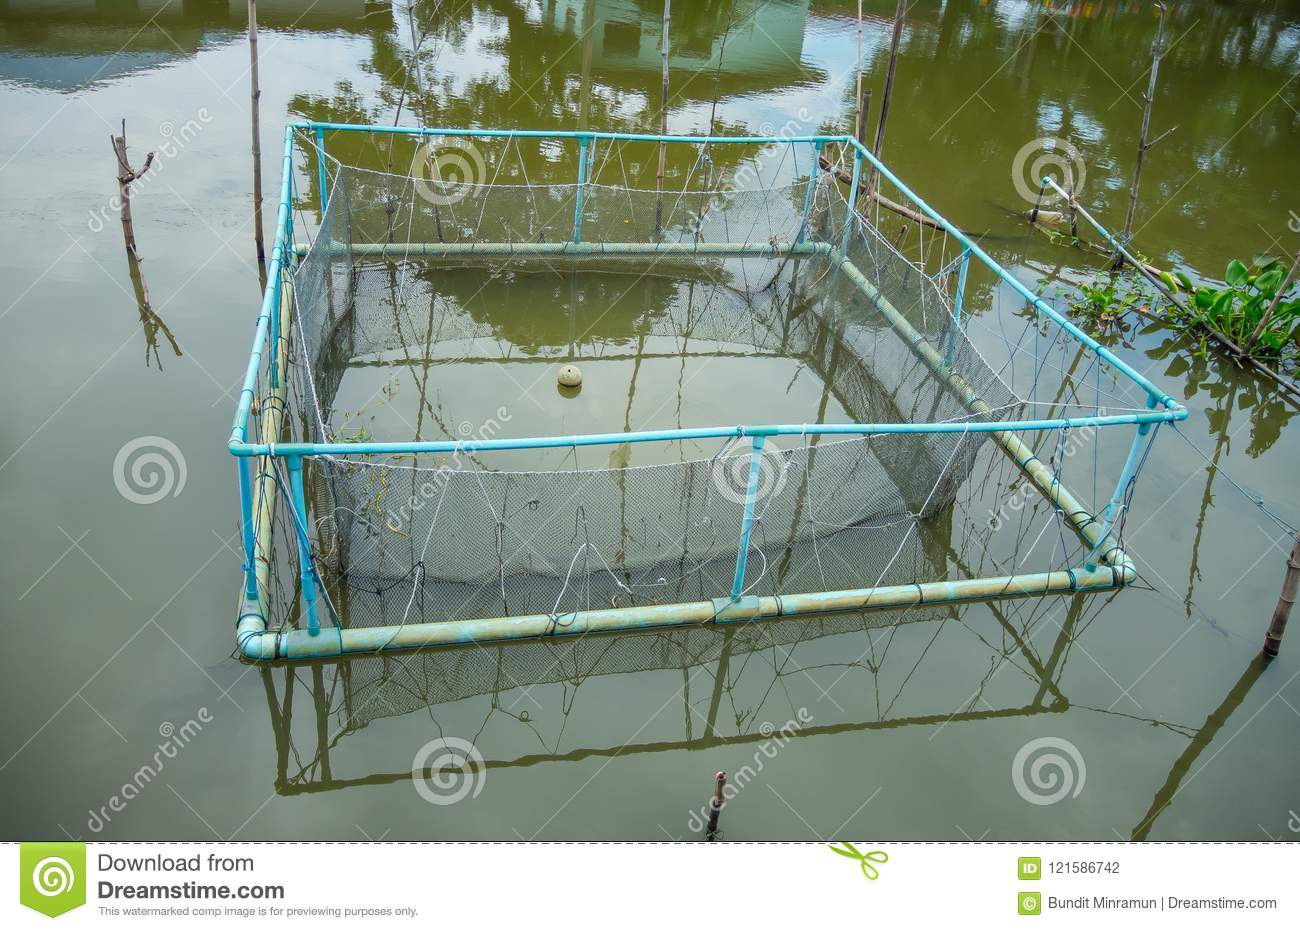 Square Freshwater Pisciculture Fish Farming Net Cage In A Canal In A